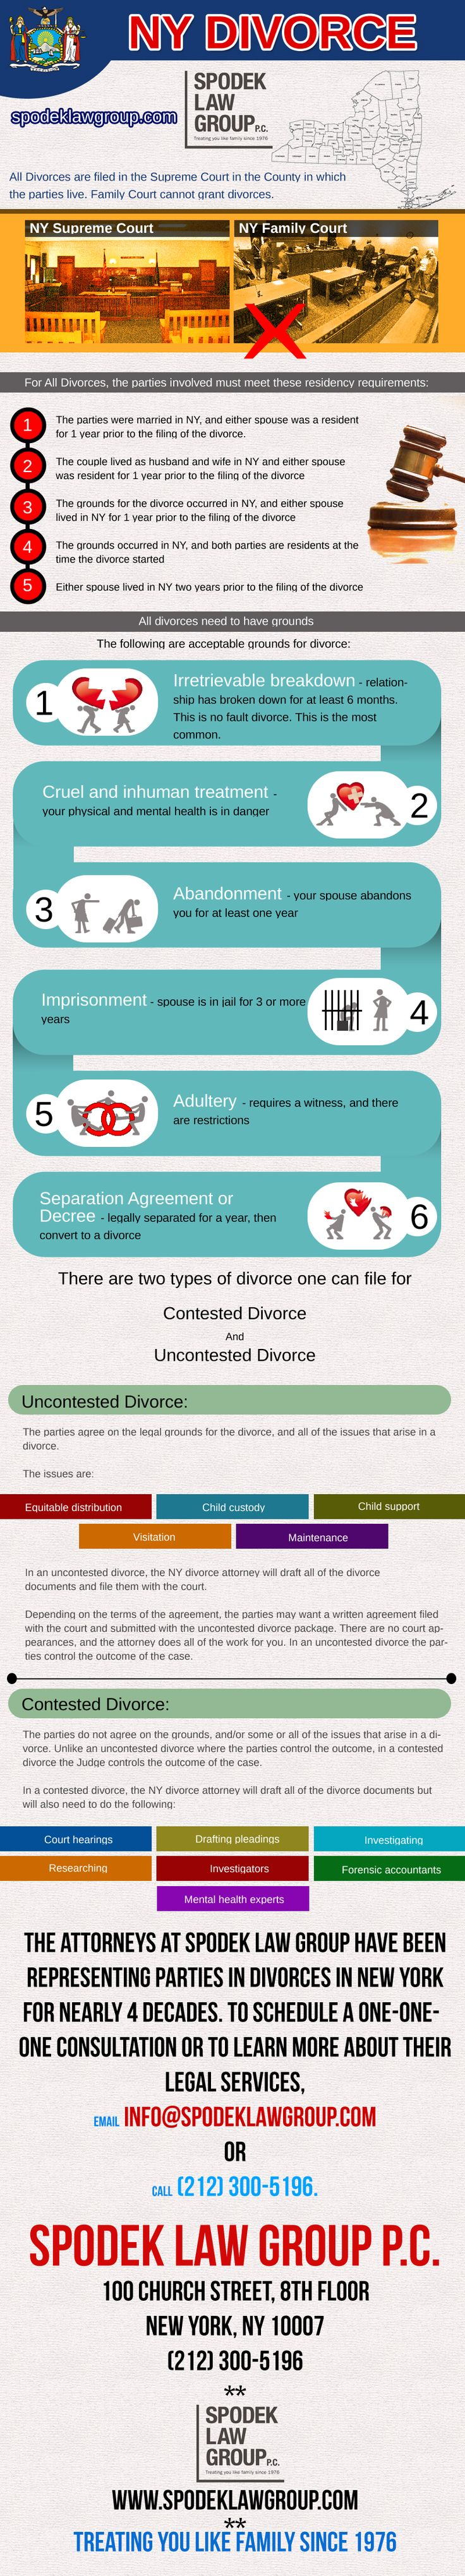 http://www.spodeklawgroup.com/ny-uncontested-divorce-vs-ny-contested-divorce/    NY UNCONTESTED DIVORCE vs. NY CONTESTED DIVORCE  Generally, when potential divorce clients come to my office for a free consultation regarding obtaining a divorce the first thing they want to know is whether it is going to be a contested divorce or an uncontested divorce. The truth is that the only people who will know the answer to the question is the husband and wife themselves.